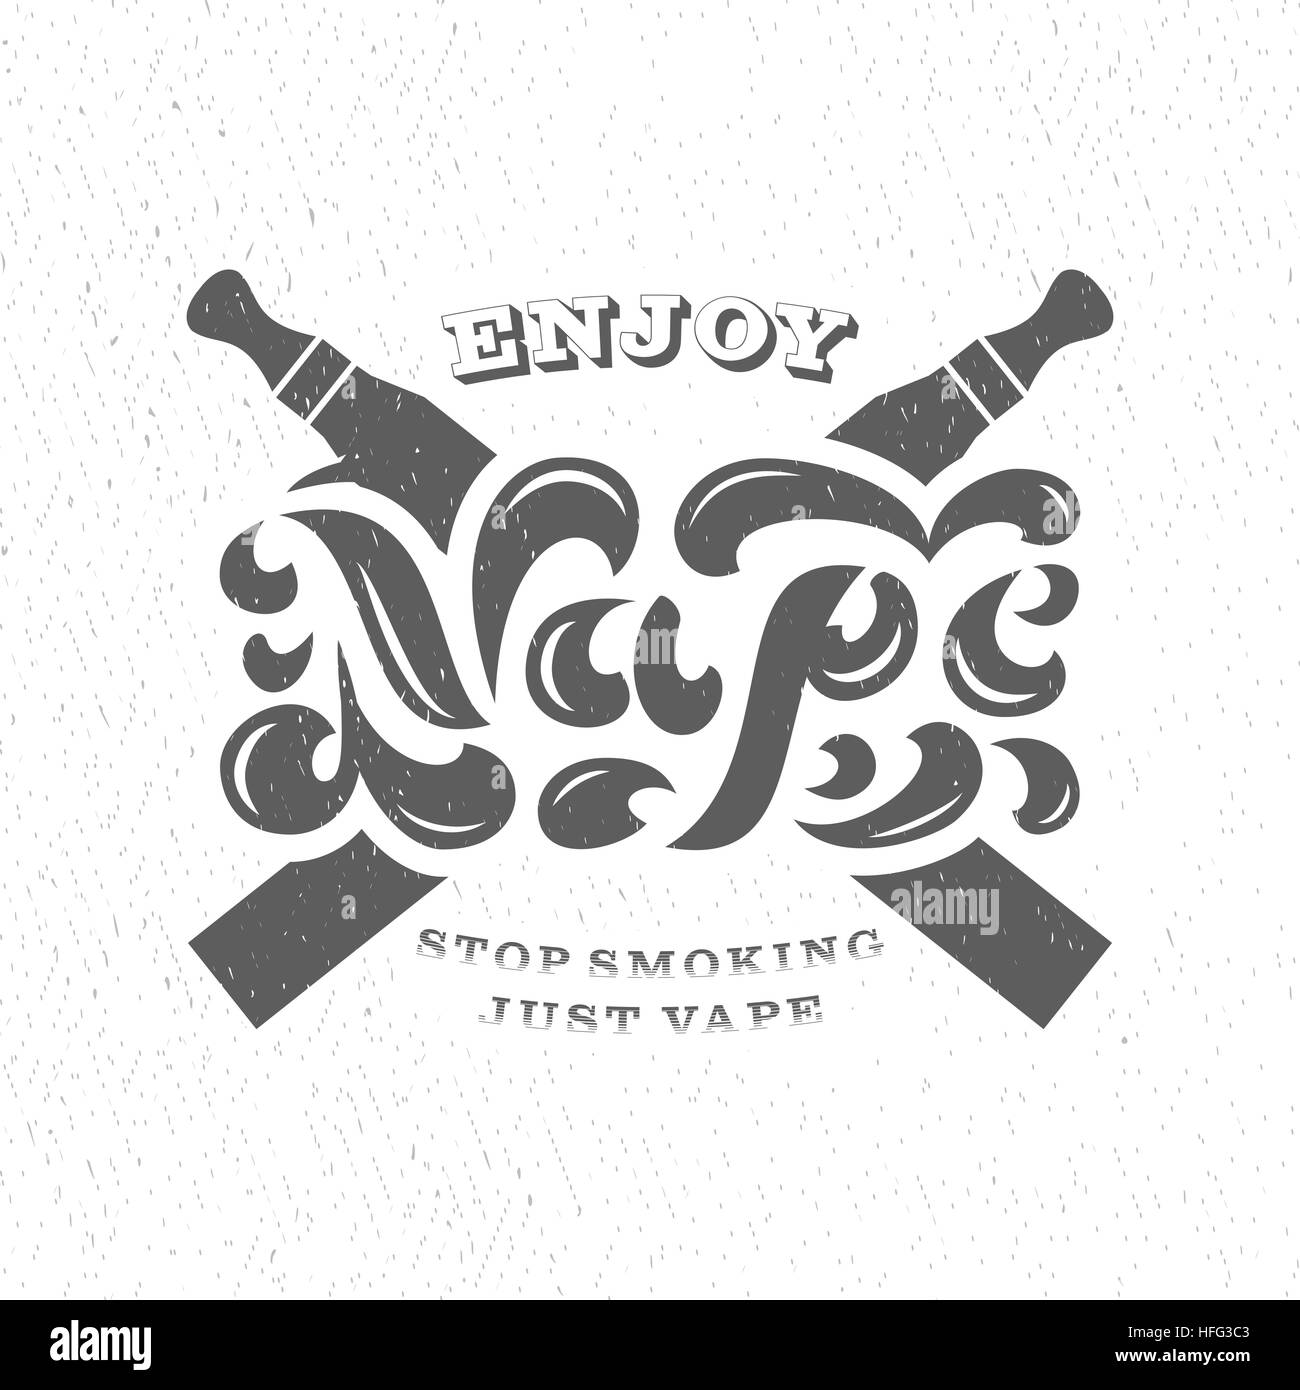 Vape Shop Logotype With Vapor Cloud On White Background. Badge For Electronic Cigarettes Store Advertising Or Window - Stock Image